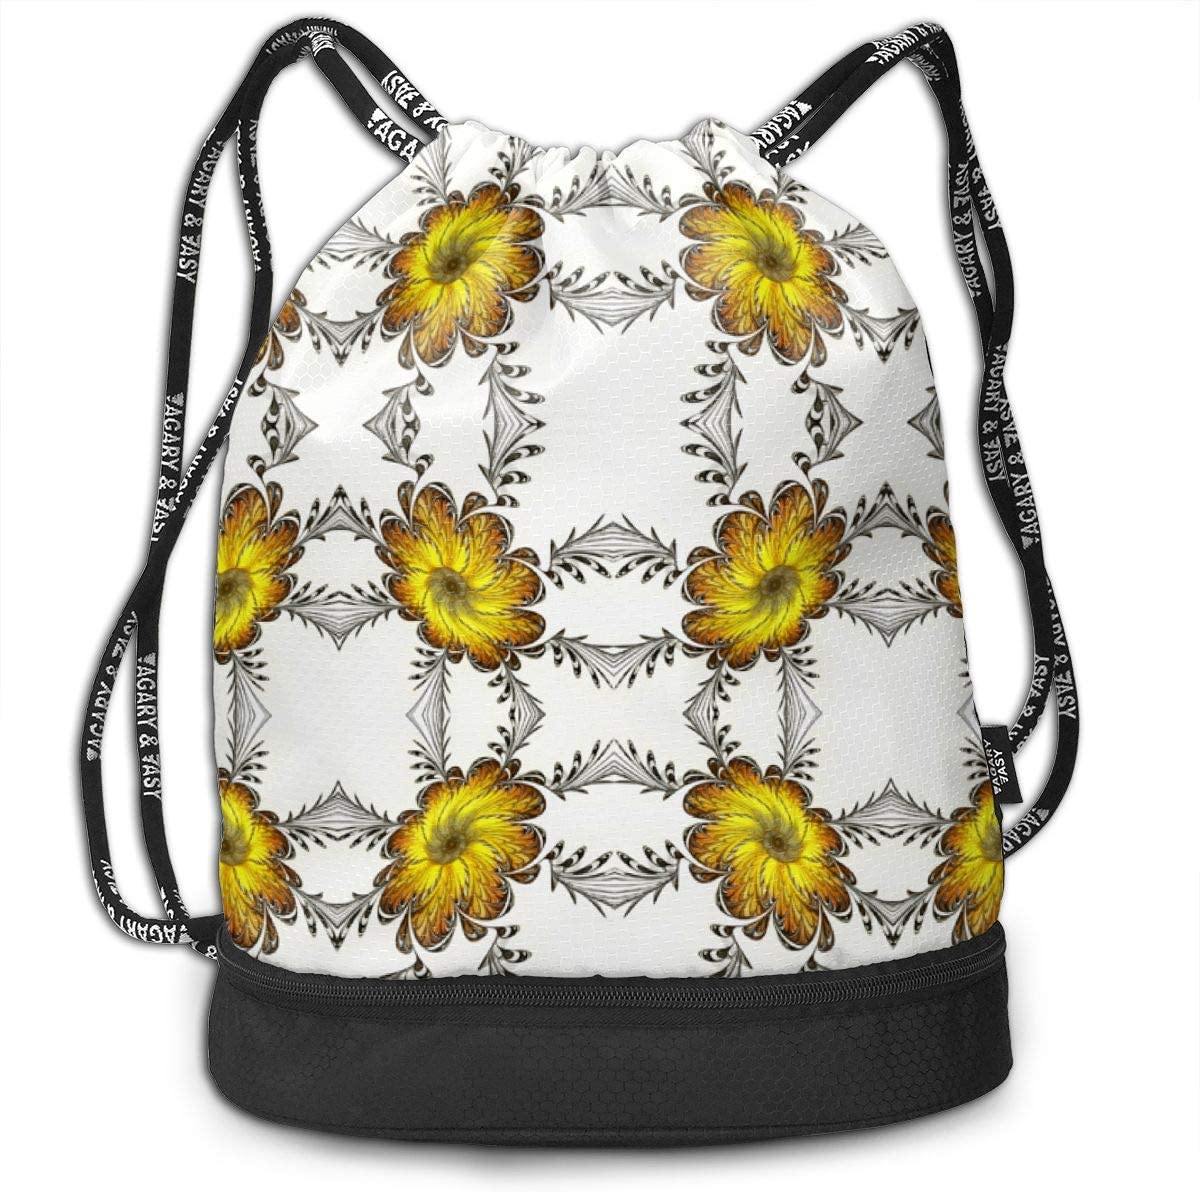 The Emperors Marigolds Drawstring Backpack Sports Athletic Gym Cinch Sack String Storage Bags for Hiking Travel Beach